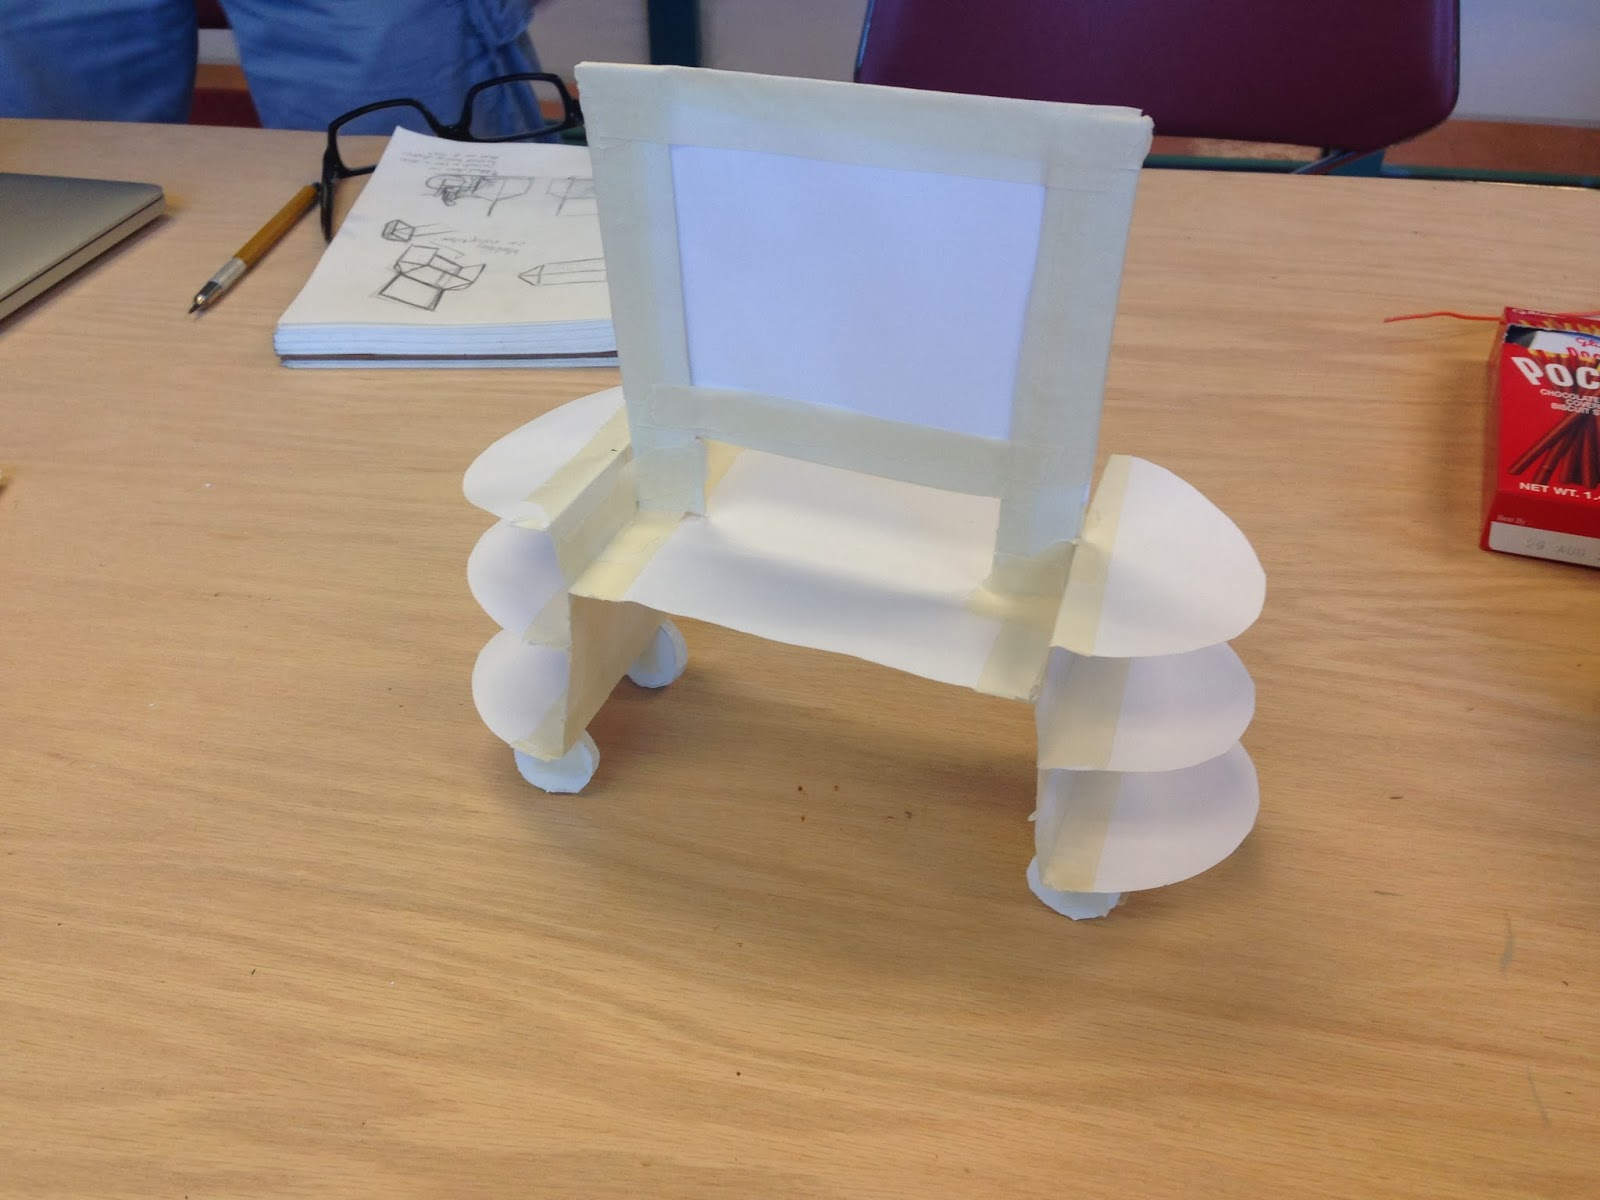 Image shows an angled view of the exhibit display paper model sitting on a table.